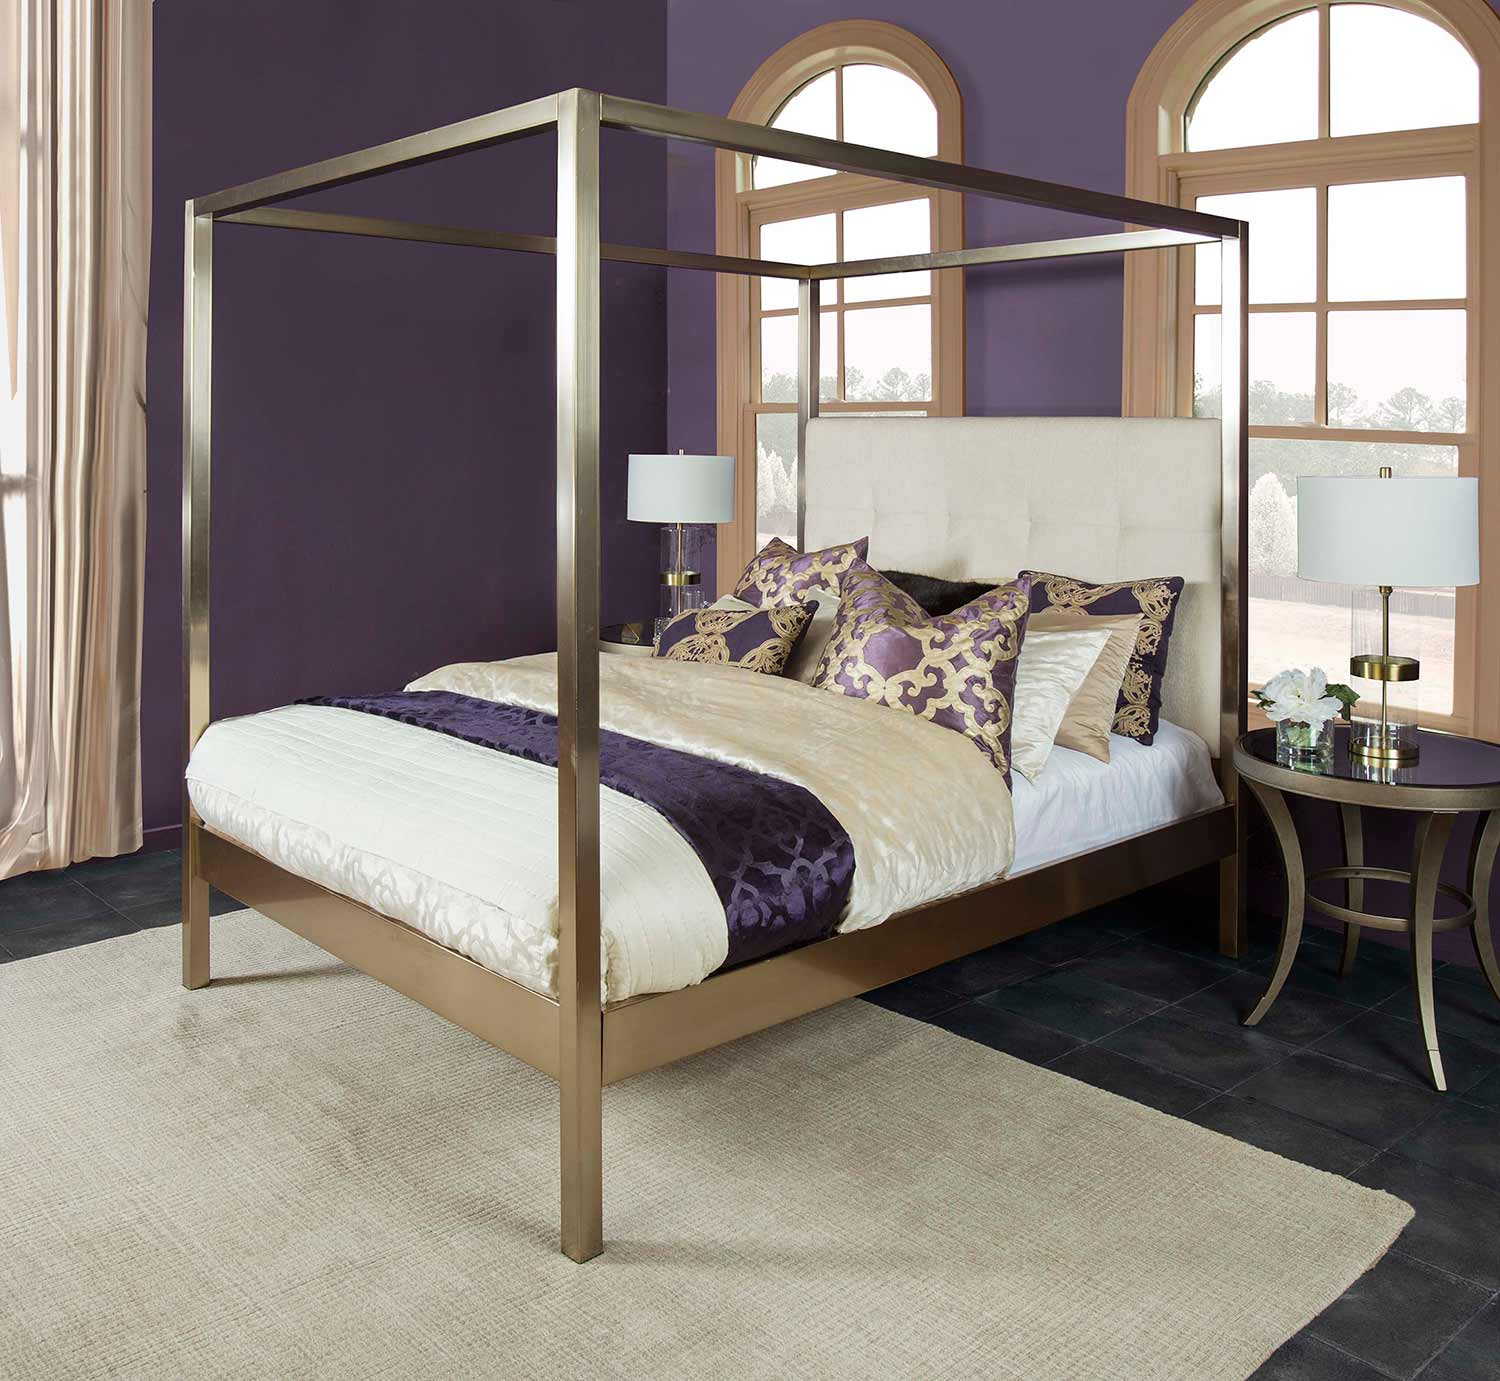 Hillsdale Bombay Upholstered Bed - Linen Stone Fabric